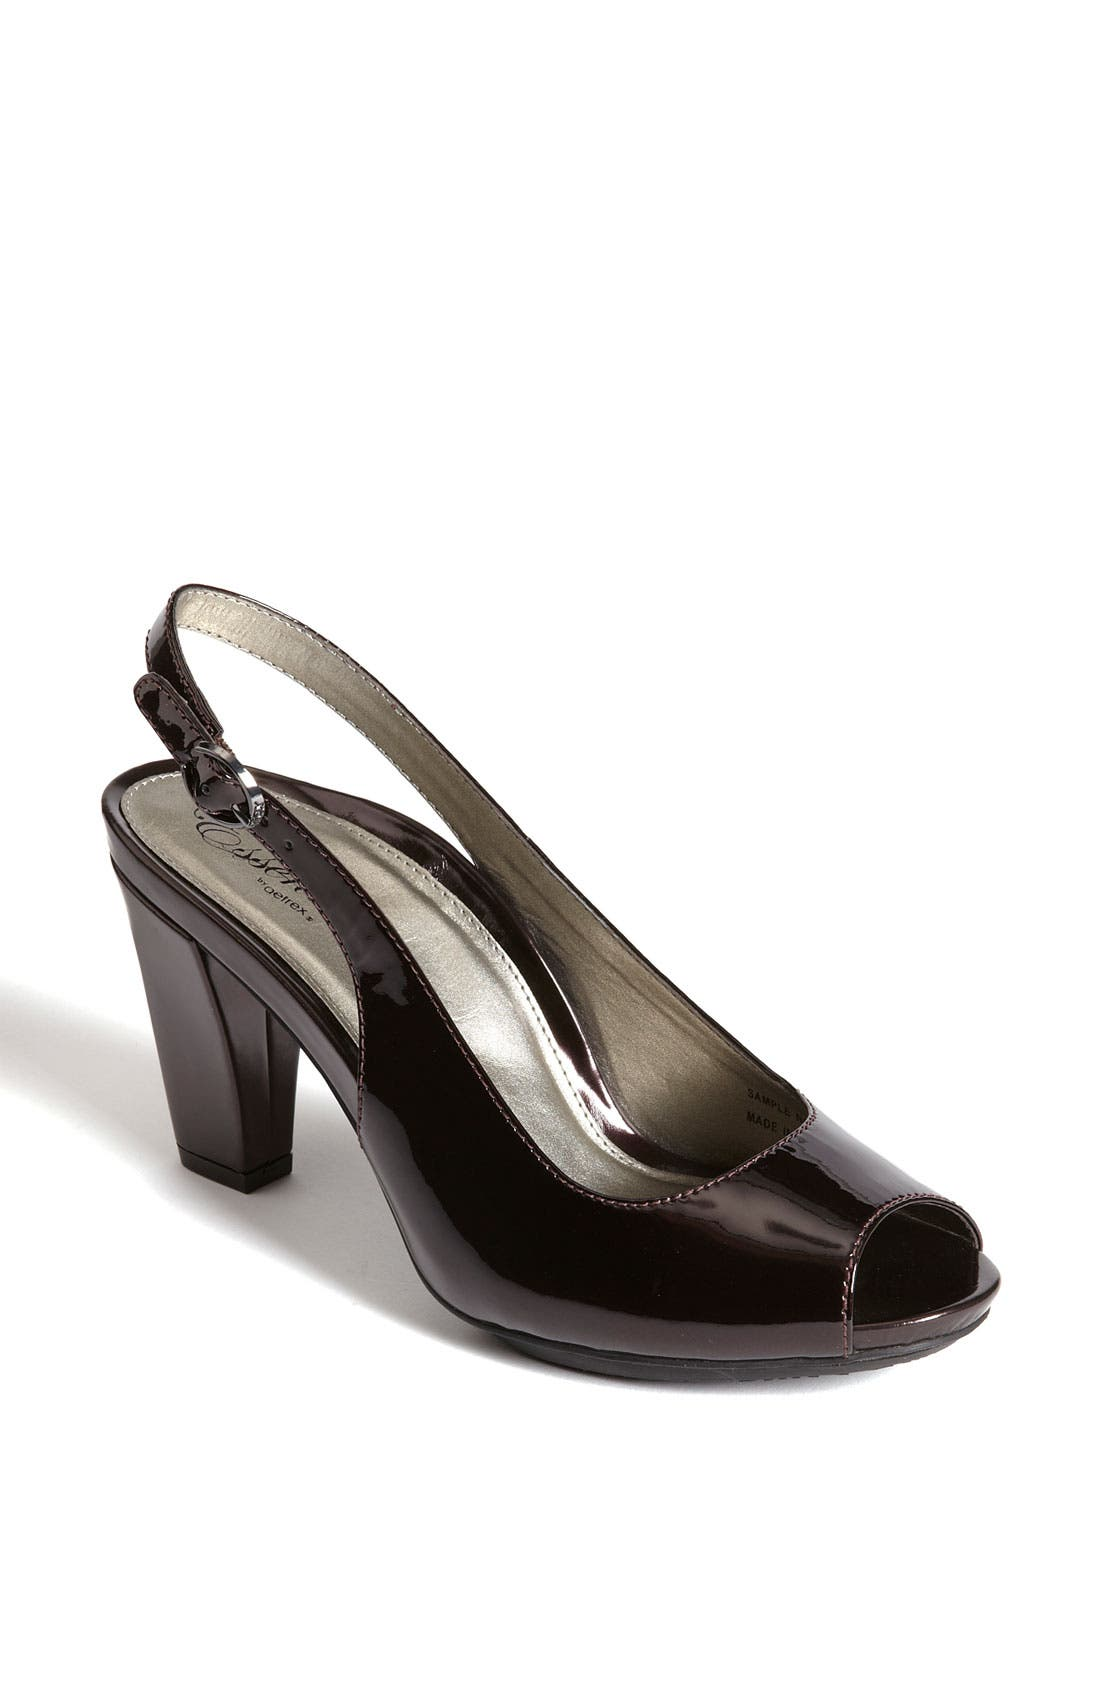 Alternate Image 1 Selected - Aetrex 'Alicia' Pump